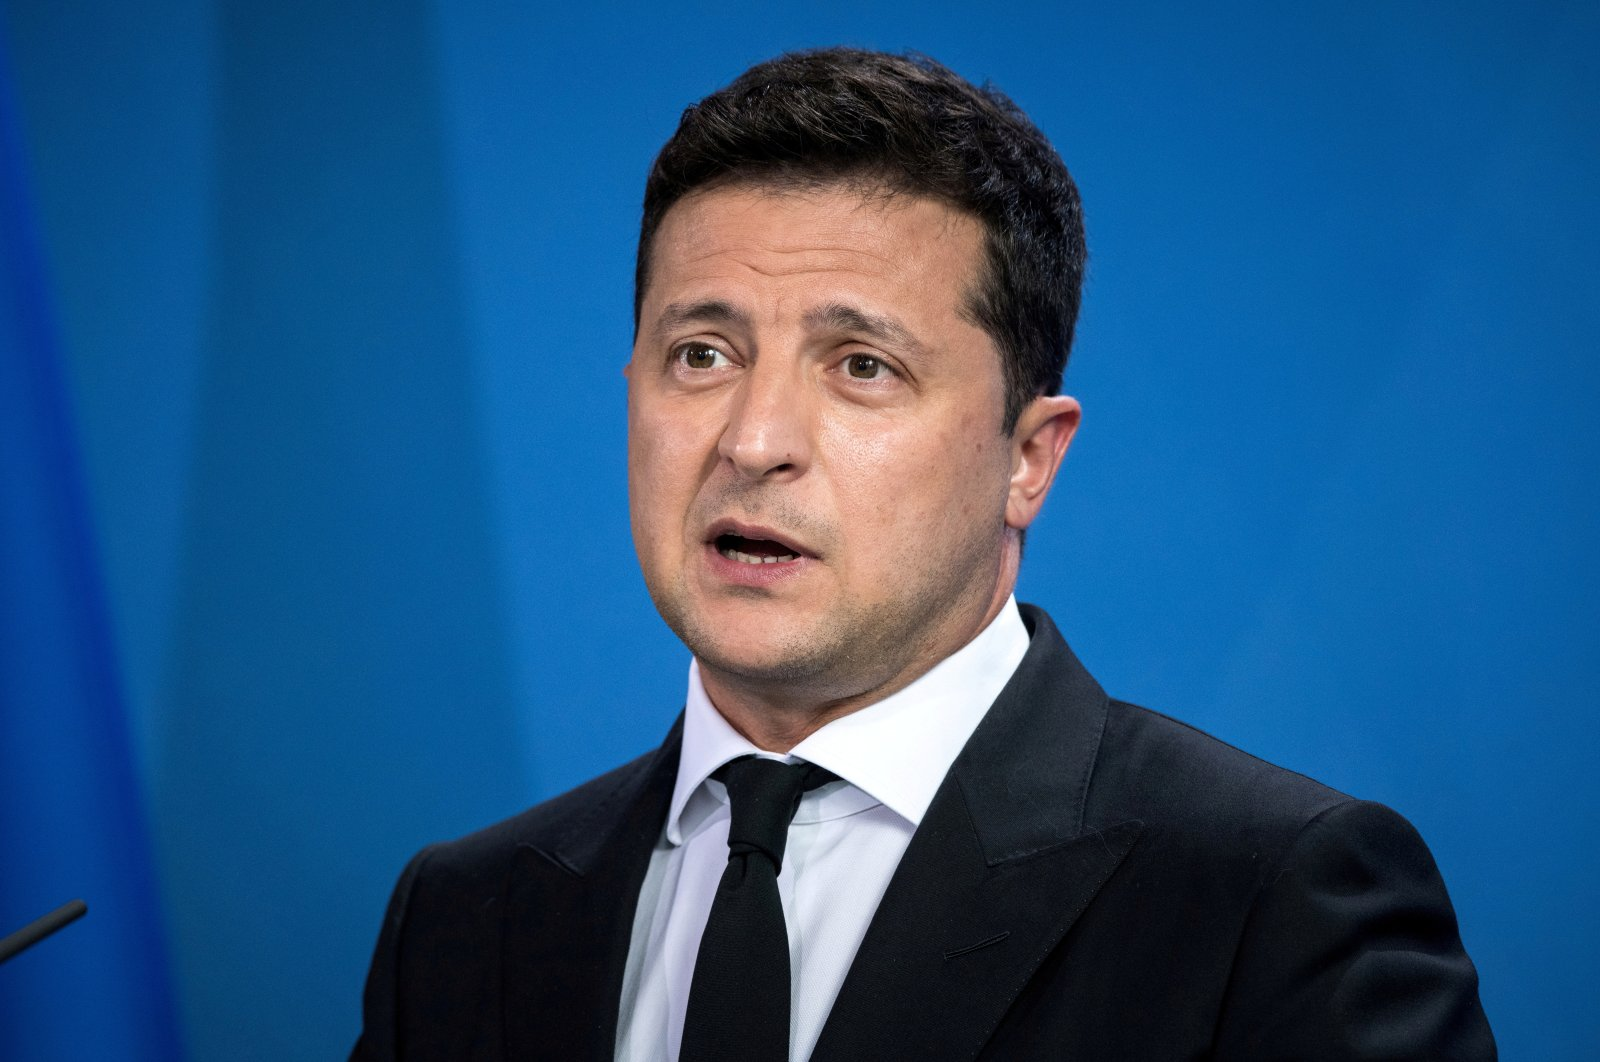 Ukrainian President Volodymyr Zelenskyy gives statements ahead of talks at the Chancellery in Berlin, Germany, July 12, 2021. (Reuters Photo)